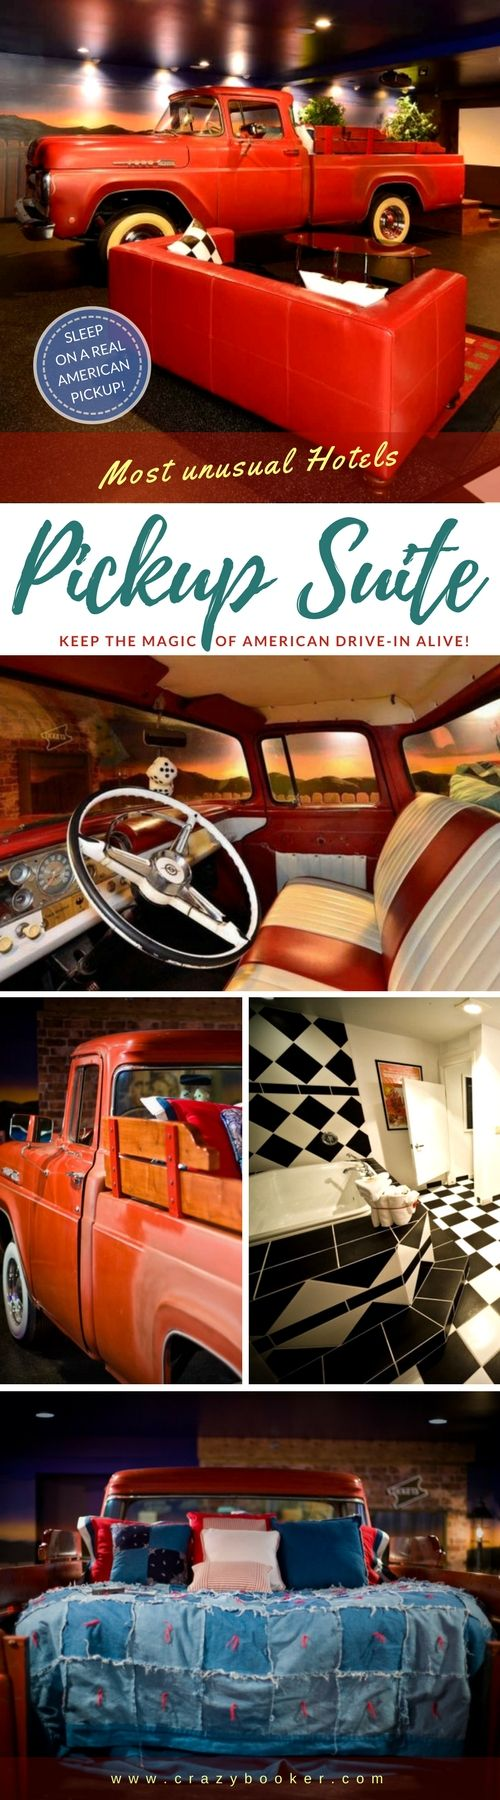 """American Drive-In Suite with unique bed on a pick-up car 